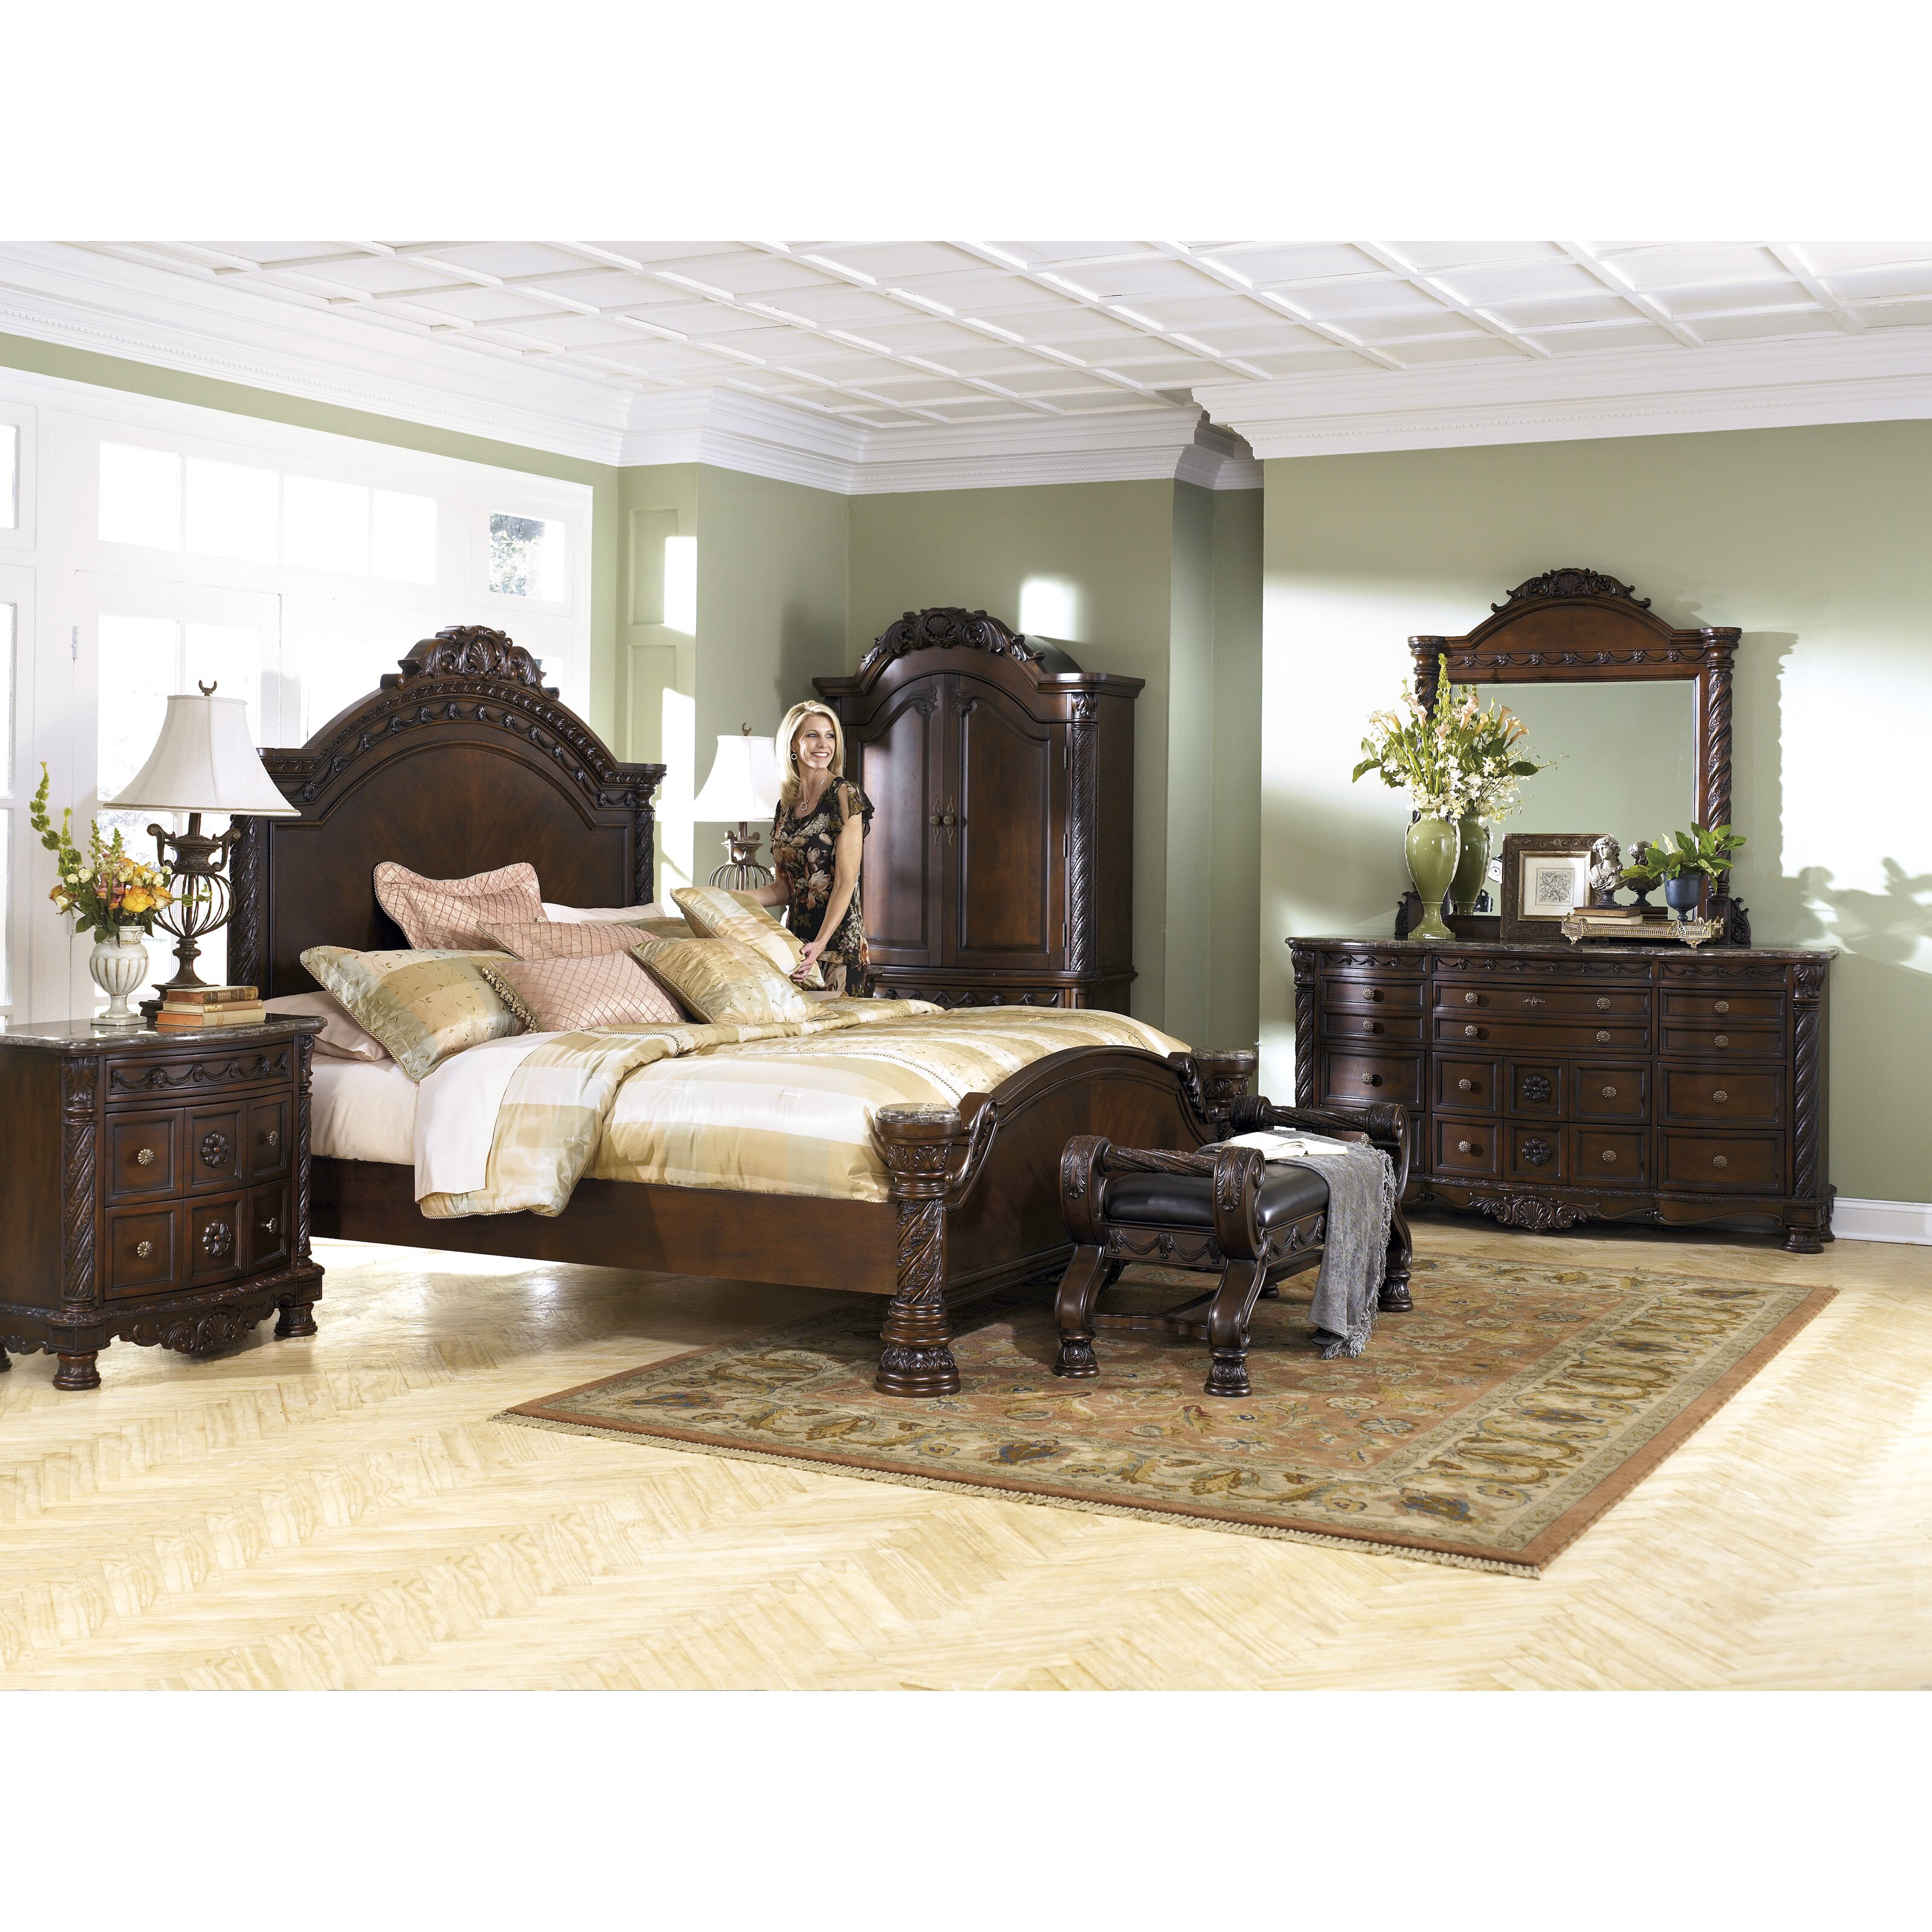 Patio Furniture For Sale In Fayetteville Nc: Wildon Home ® North Shore Upholstered Bedroom Bench